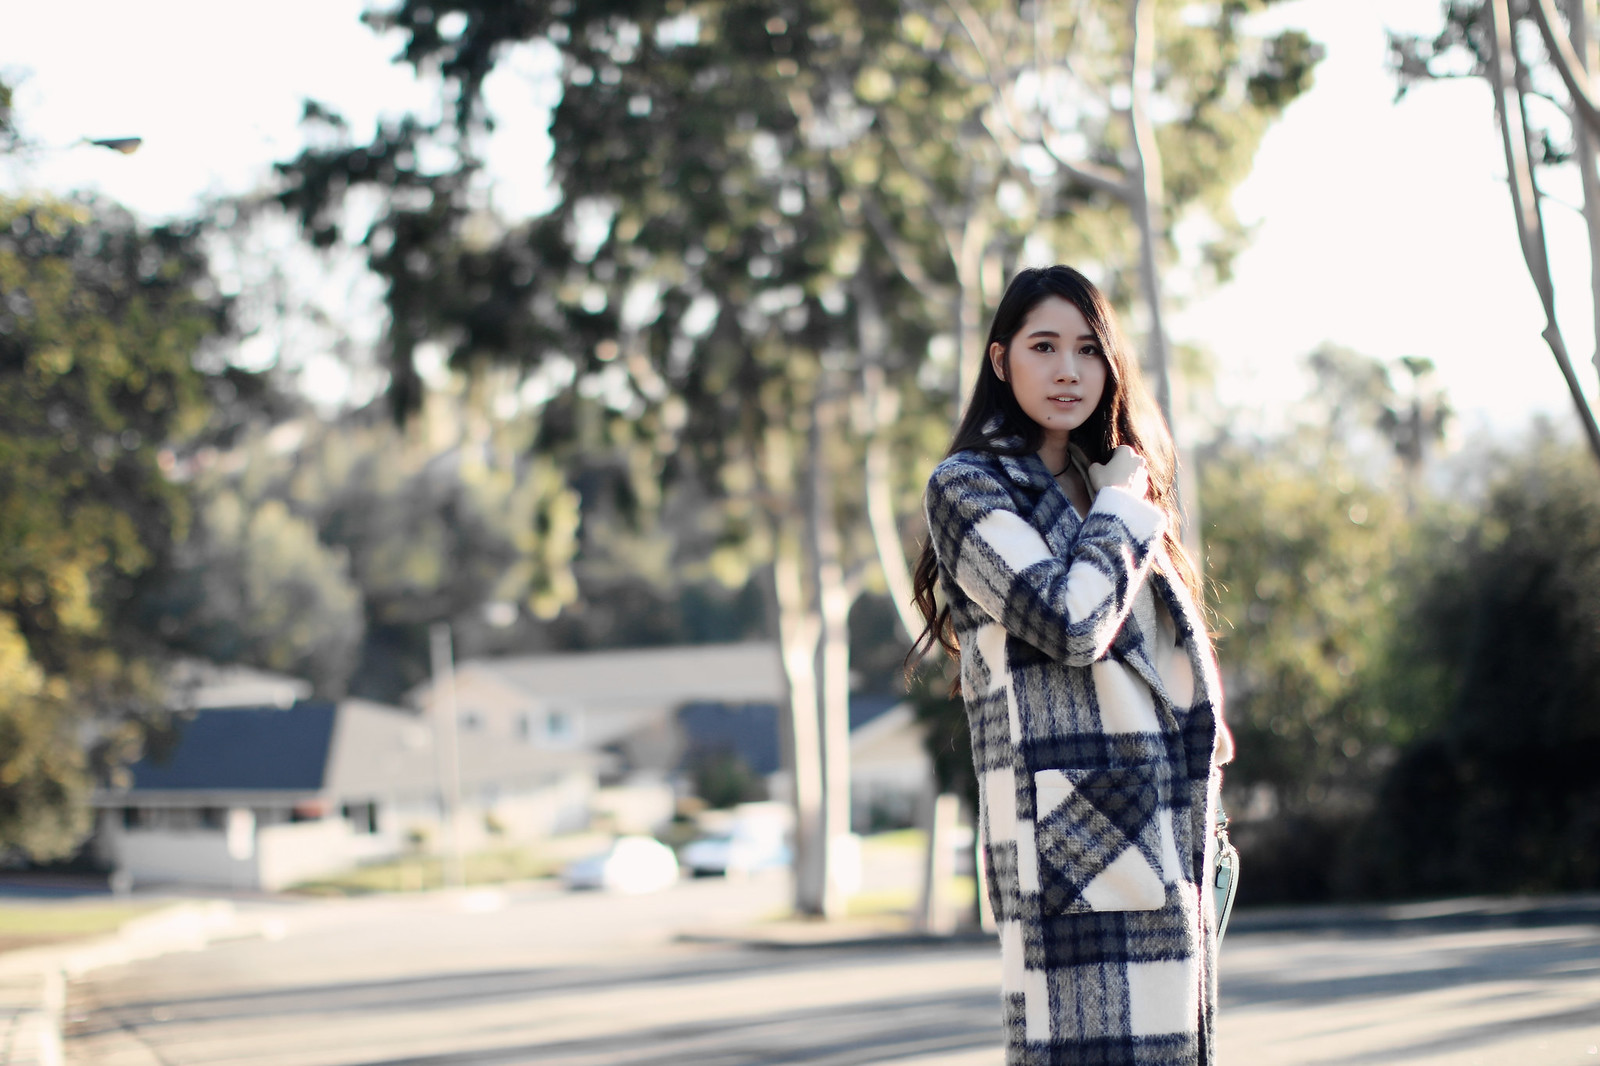 1488-ootd-fashion-blue-navy-forever21-coat-winterfashion-koreanfashion-ulzzangfashion-longlinecoat-clothestoyouuu-elizabeeetht